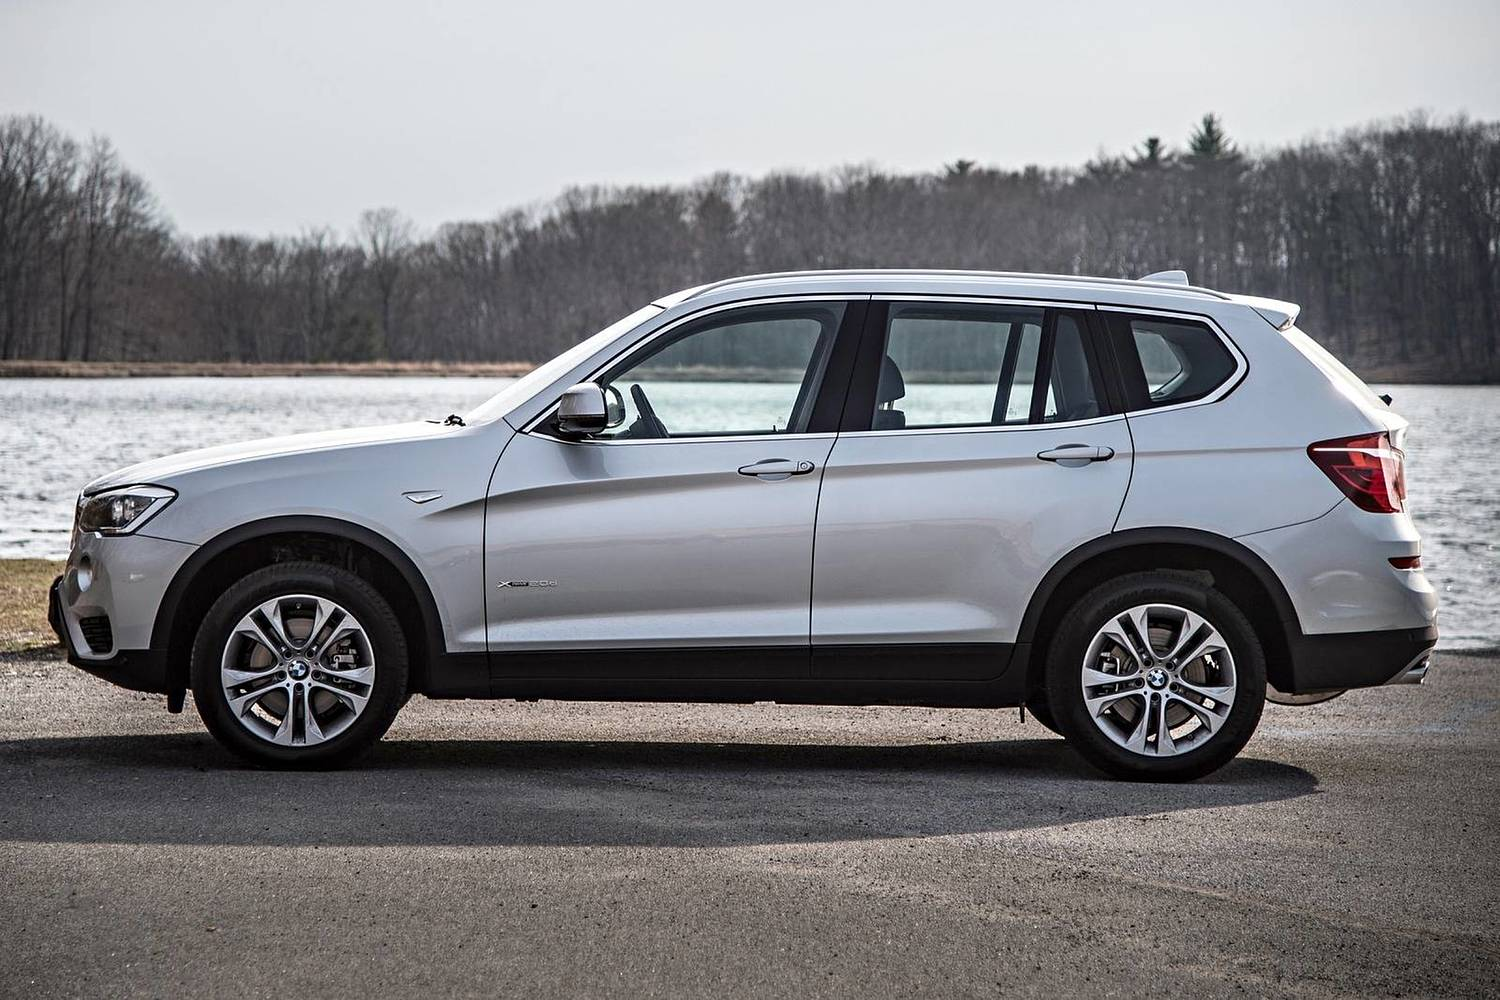 2017 bmw x3 suv vehie. Black Bedroom Furniture Sets. Home Design Ideas